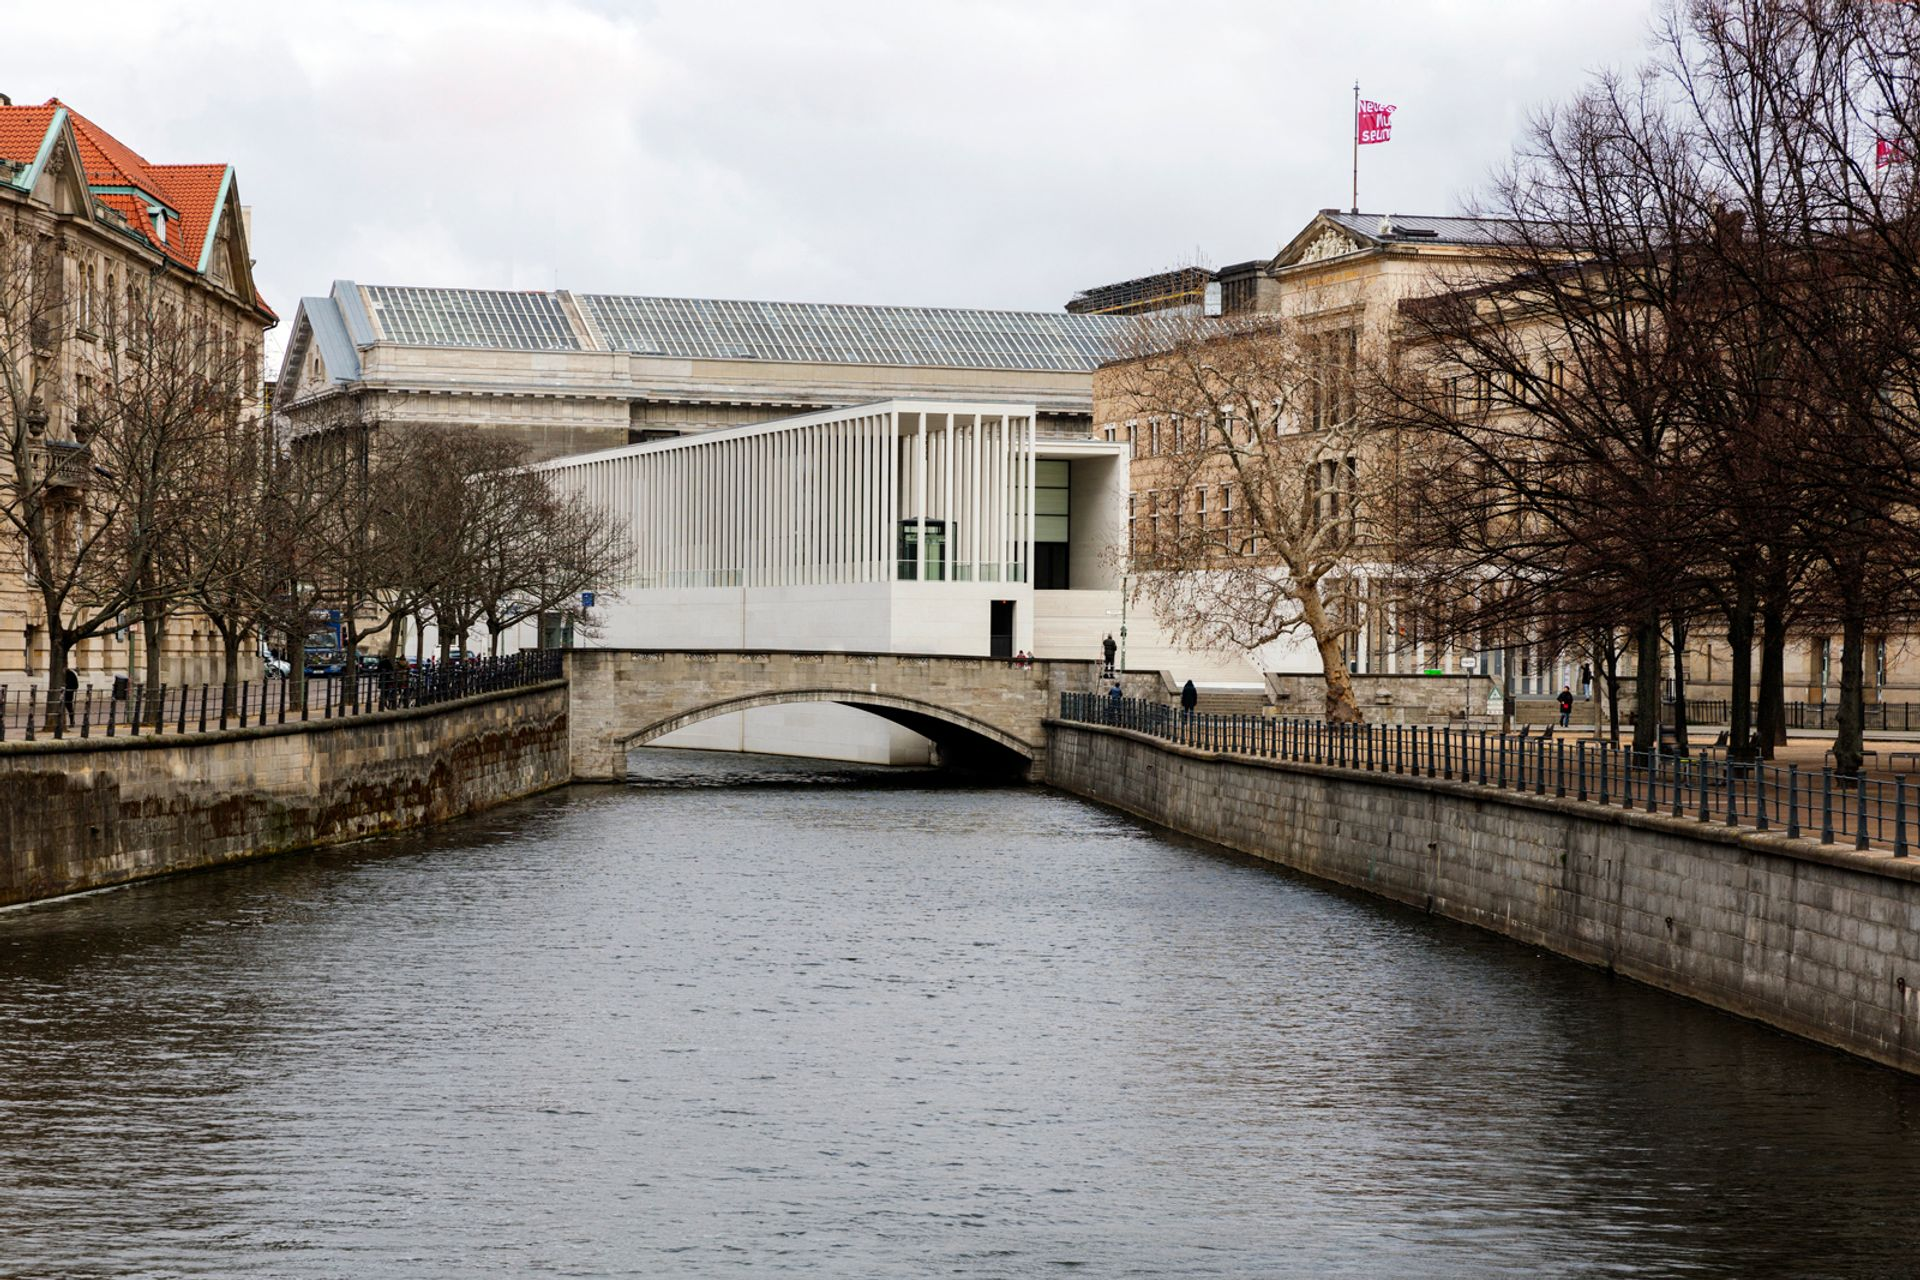 Unknown attackers sprayed oil on works in museums on Berlin's Museum Island this month © Ute Zscharnt für / for David Chipperfield Architects